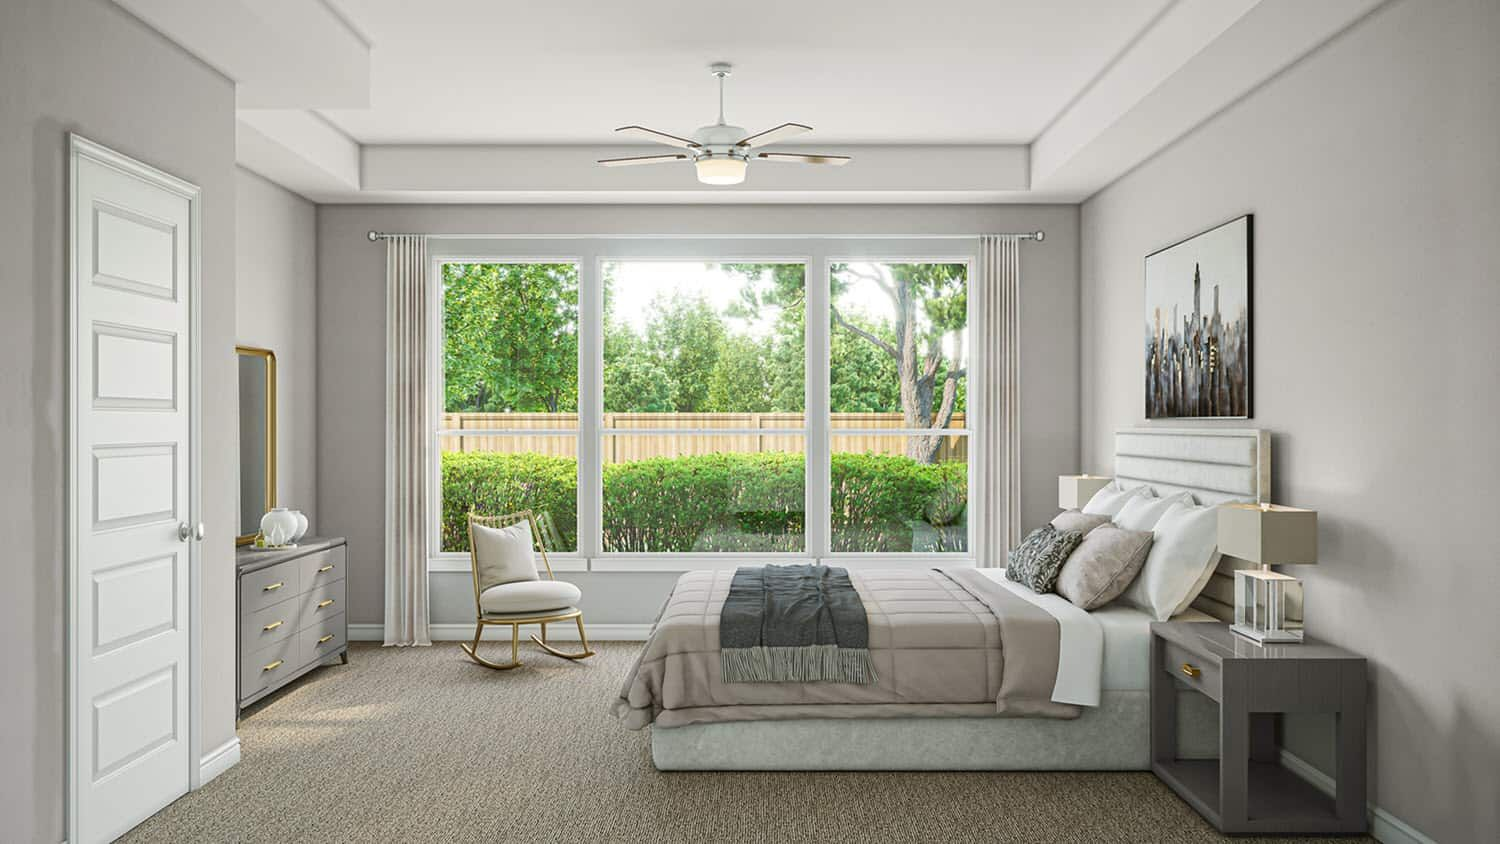 Bedroom featured in the Albion By Tri Pointe Homes in Houston, TX